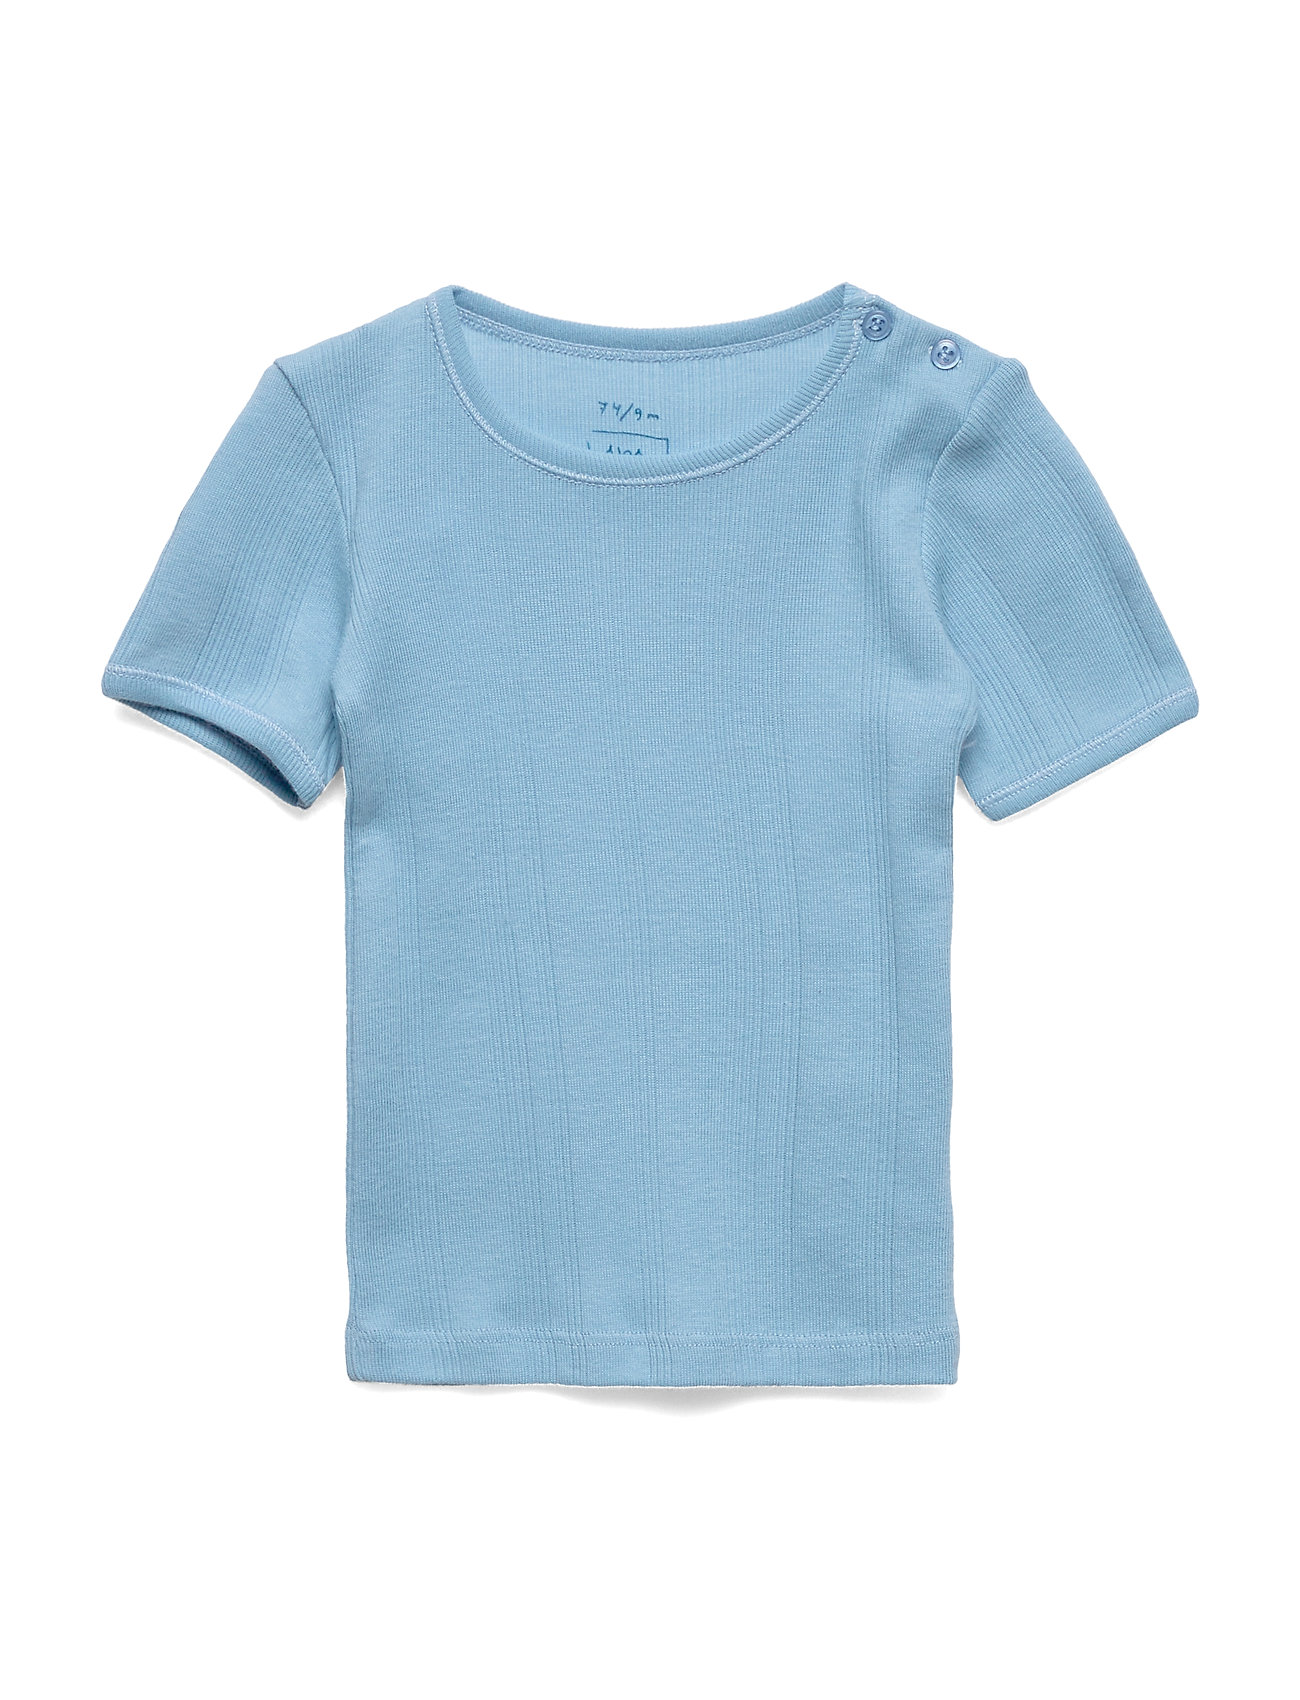 Noa Noa Miniature T-shirt - DUSK BLUE